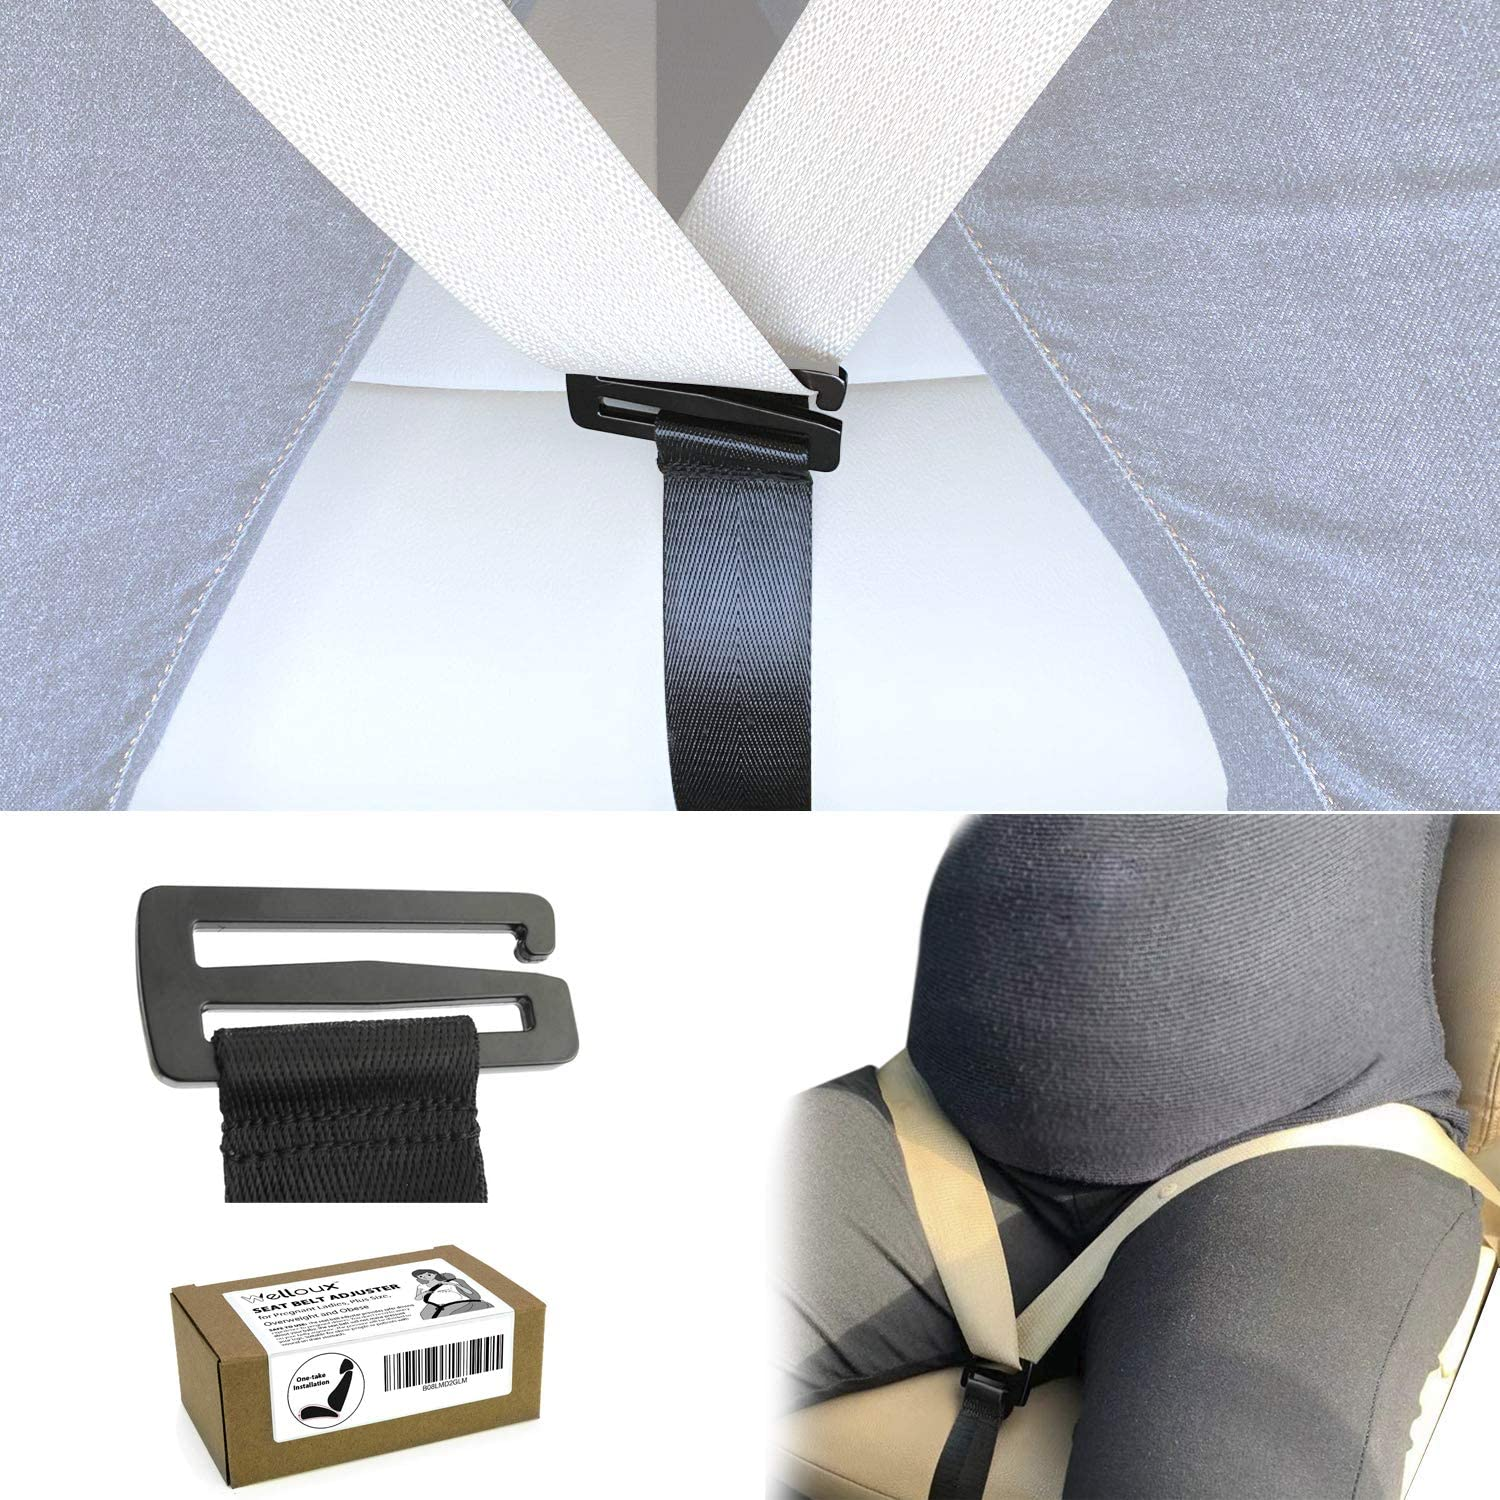 SB Adjuster, Best for Expectant Mothers and Oversize People